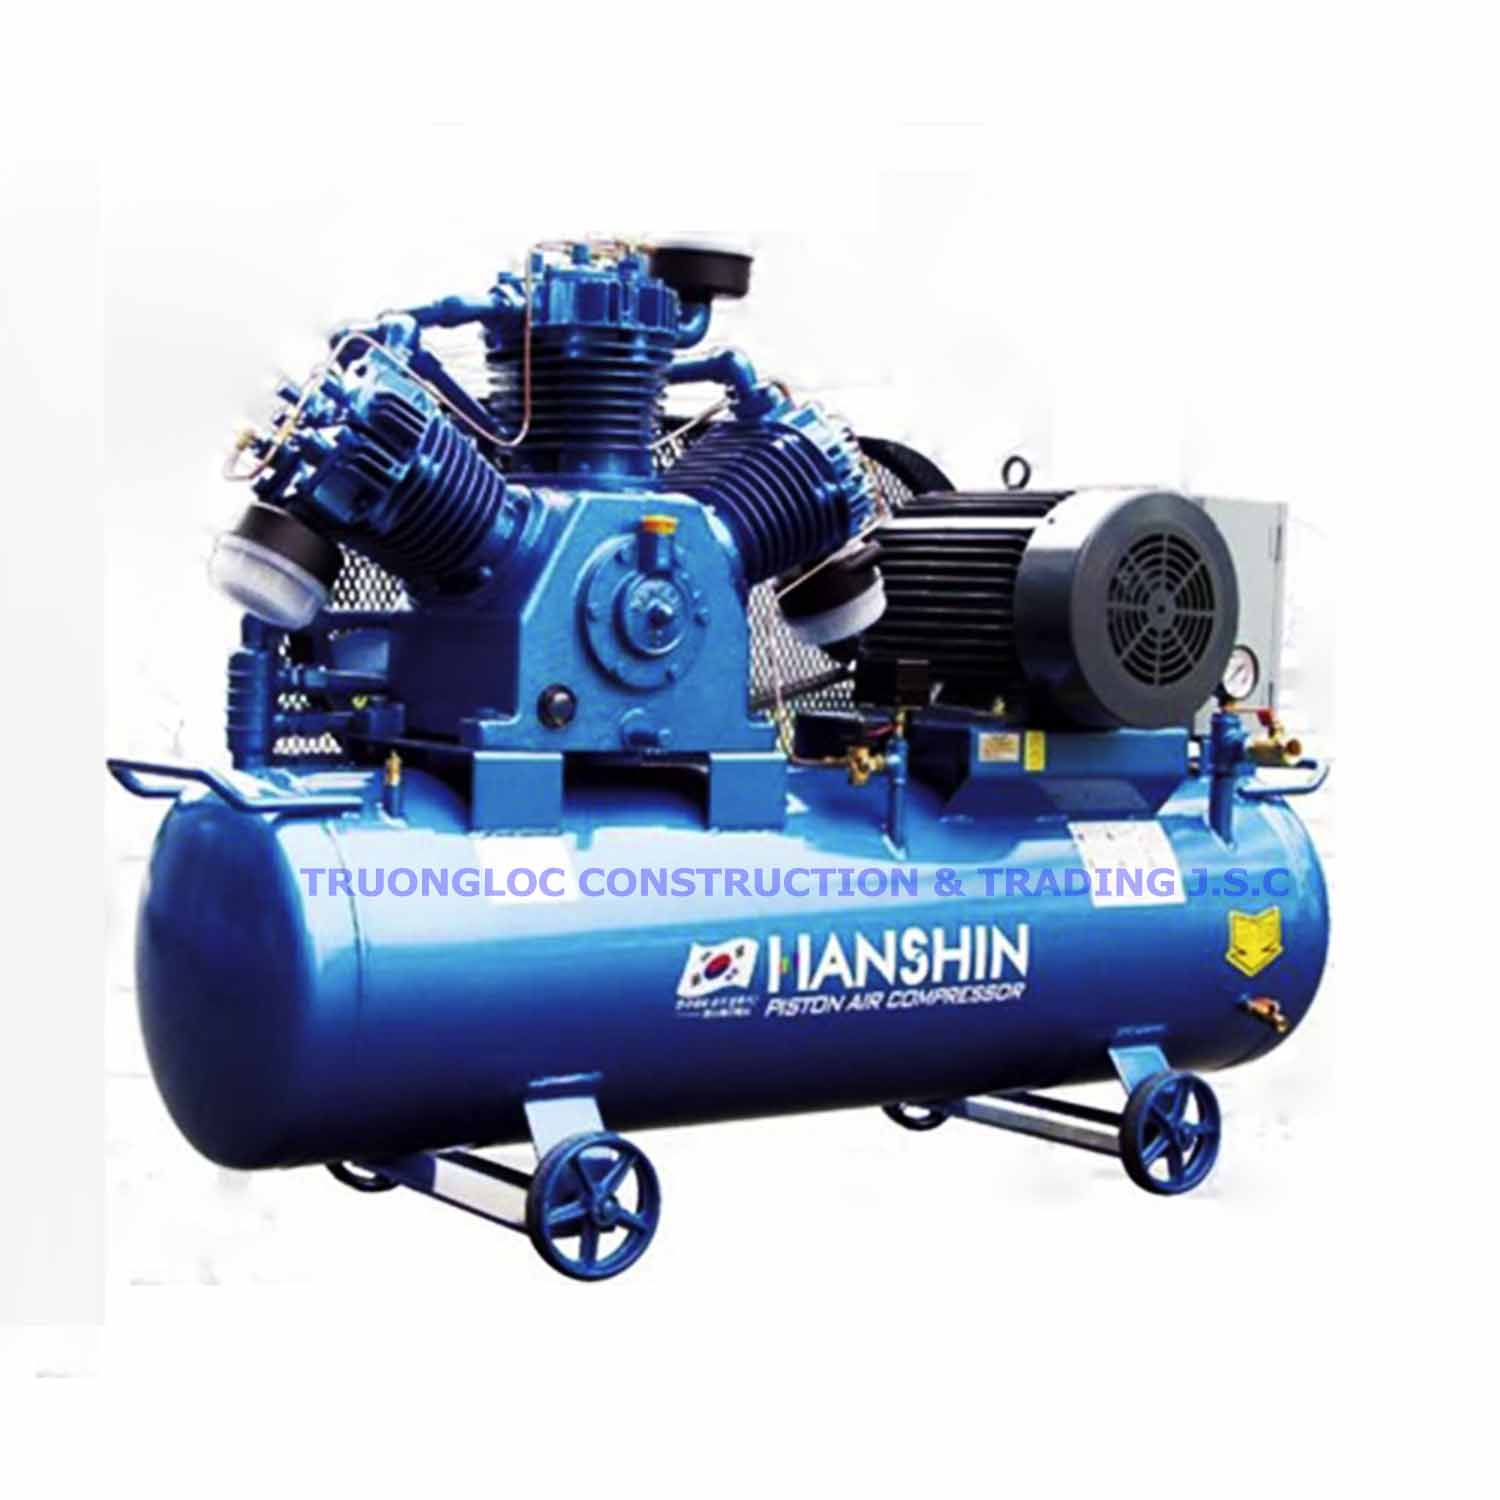 Hanshin Air Compressor Oil